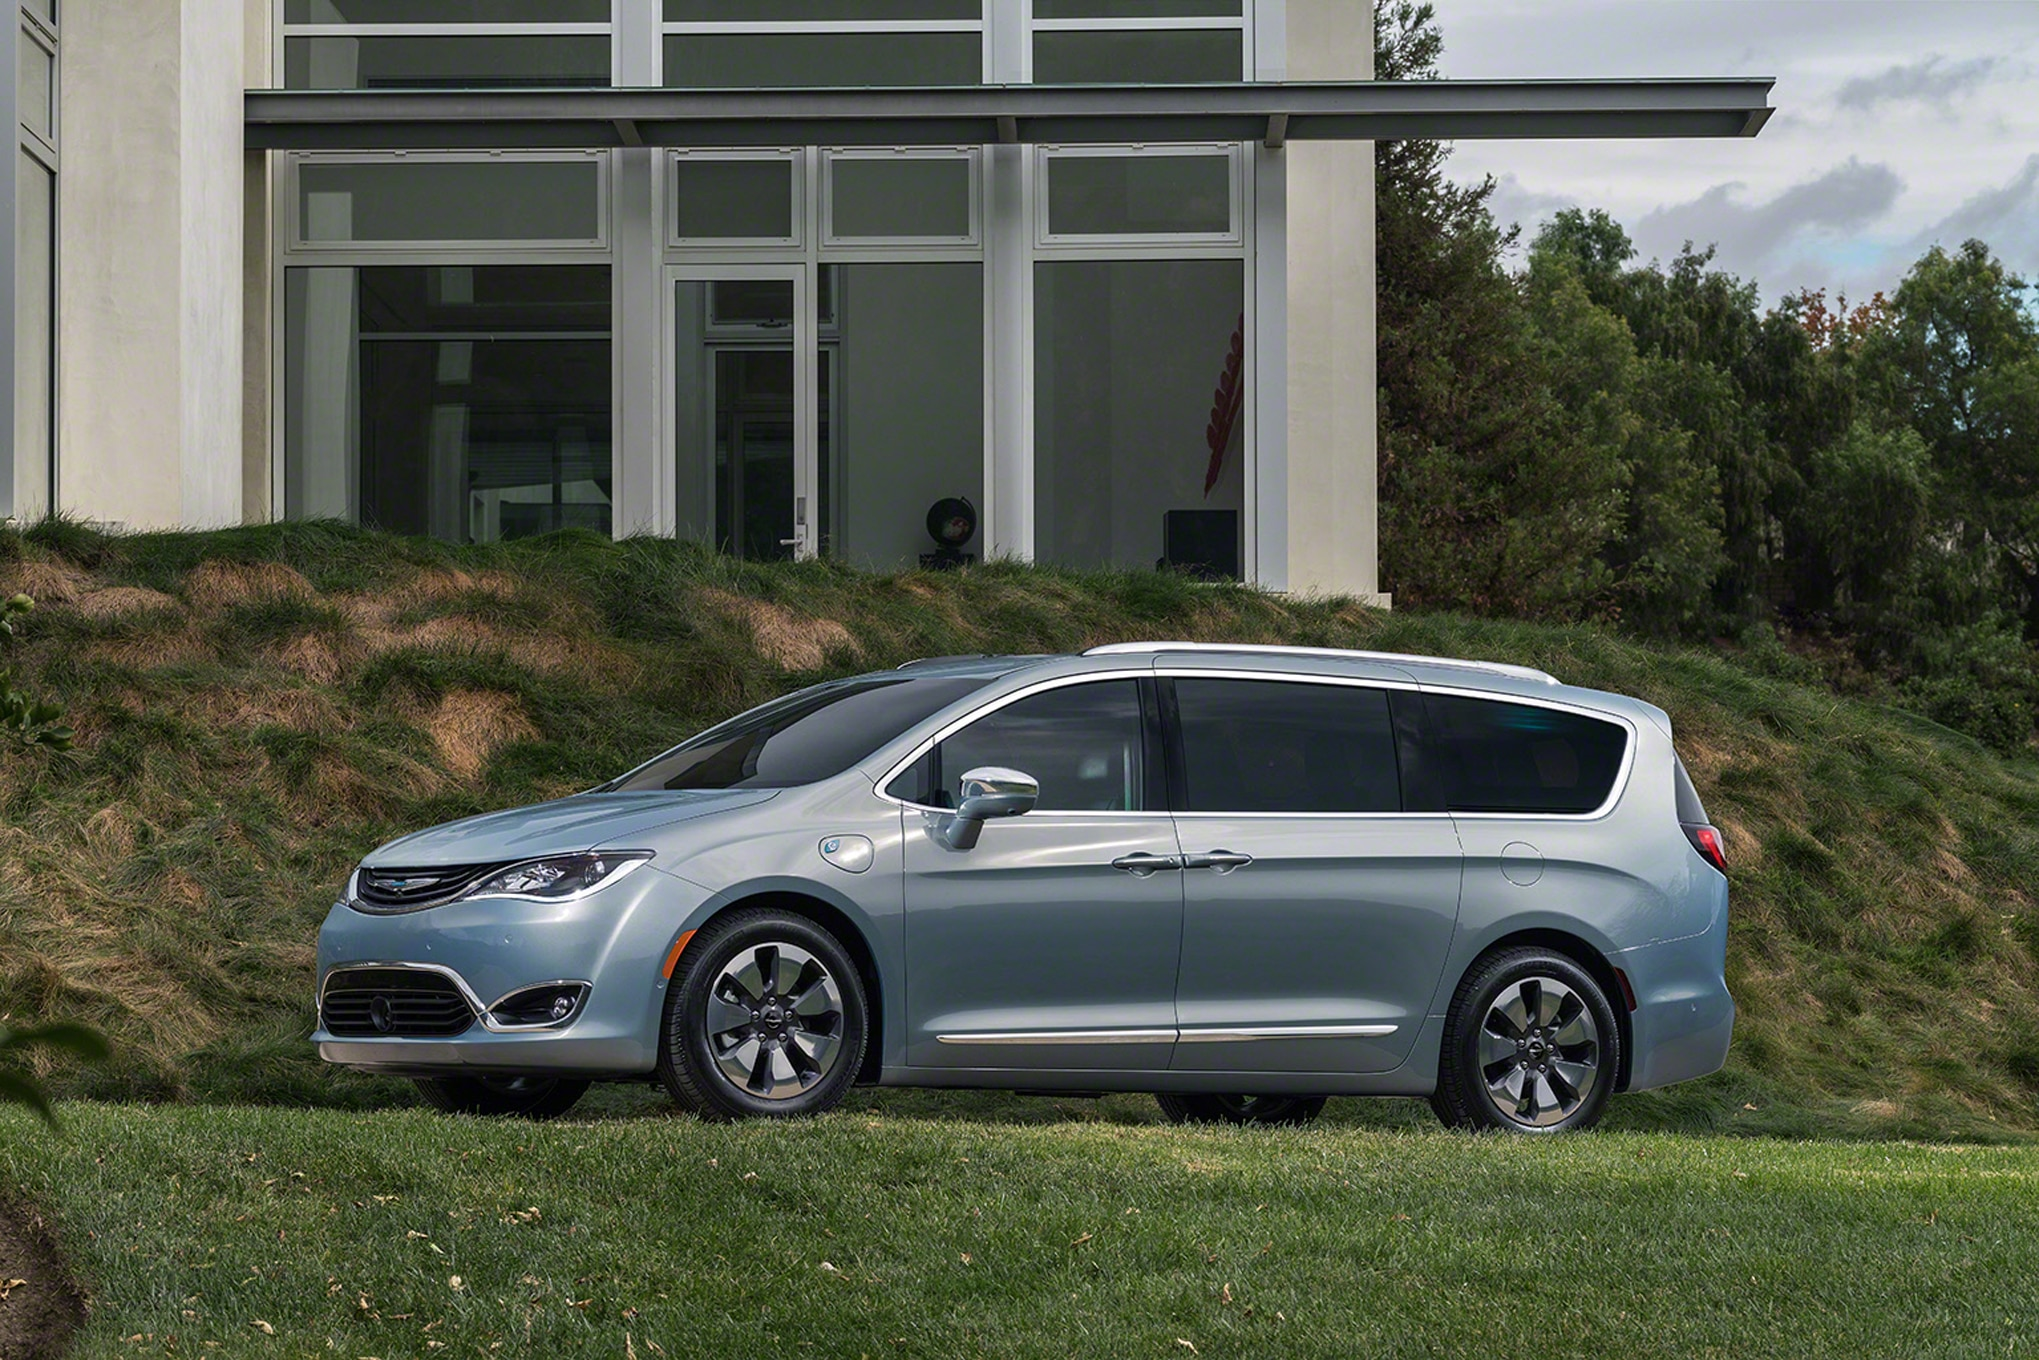 2017 chrysler pacifica hybrid first drive automobile. Black Bedroom Furniture Sets. Home Design Ideas